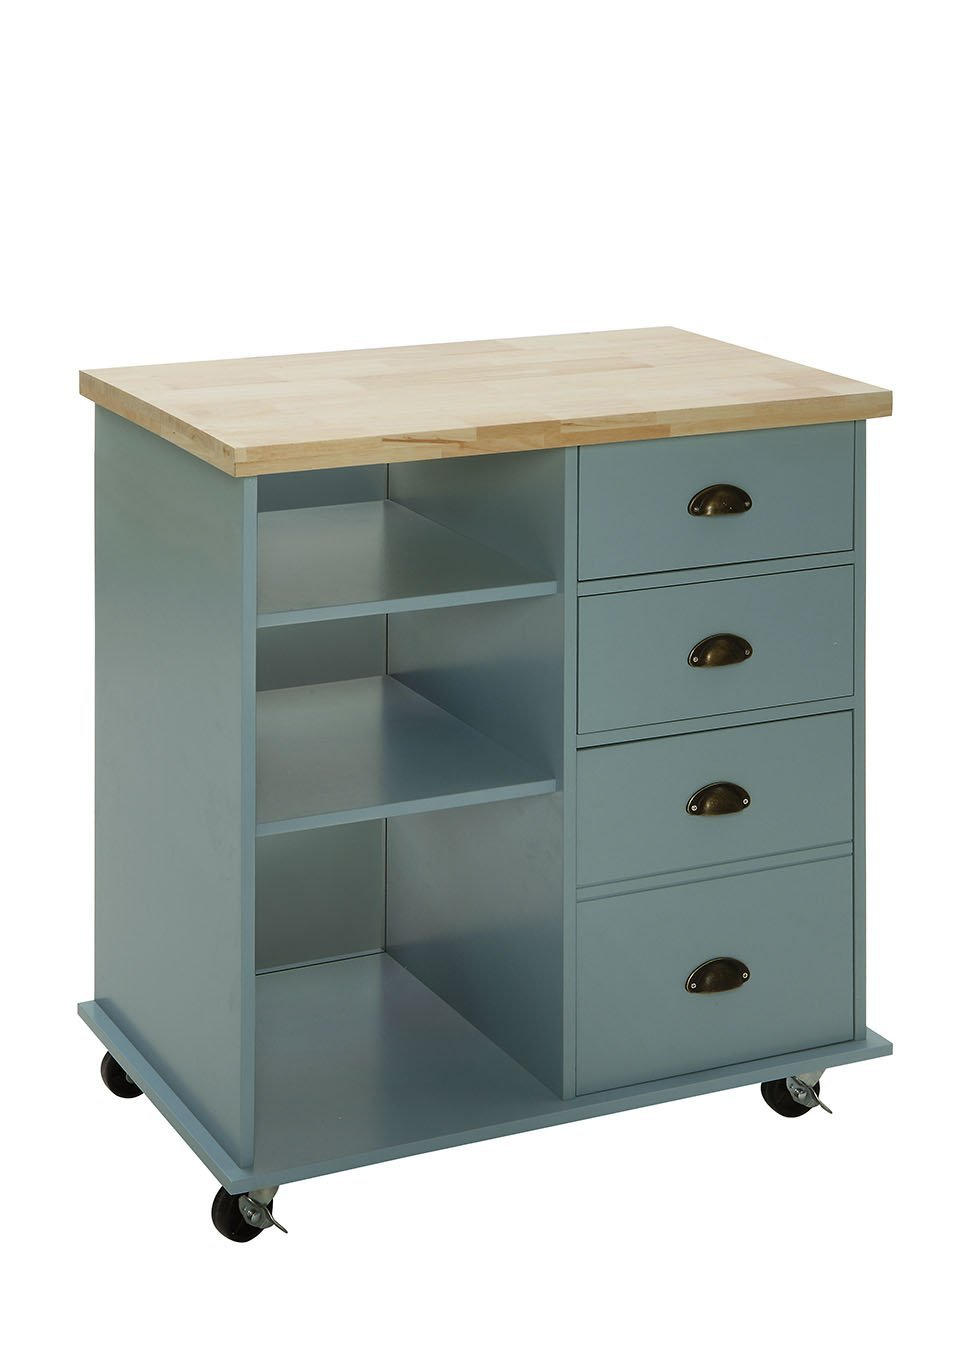 """Oliver and Smith - Nashville Collection - Mobile Kitchen Island Cart on Wheels - Blue Grey - Natural Oak Butcher Block - 31"""" W x 18"""" L x 36"""" H"""